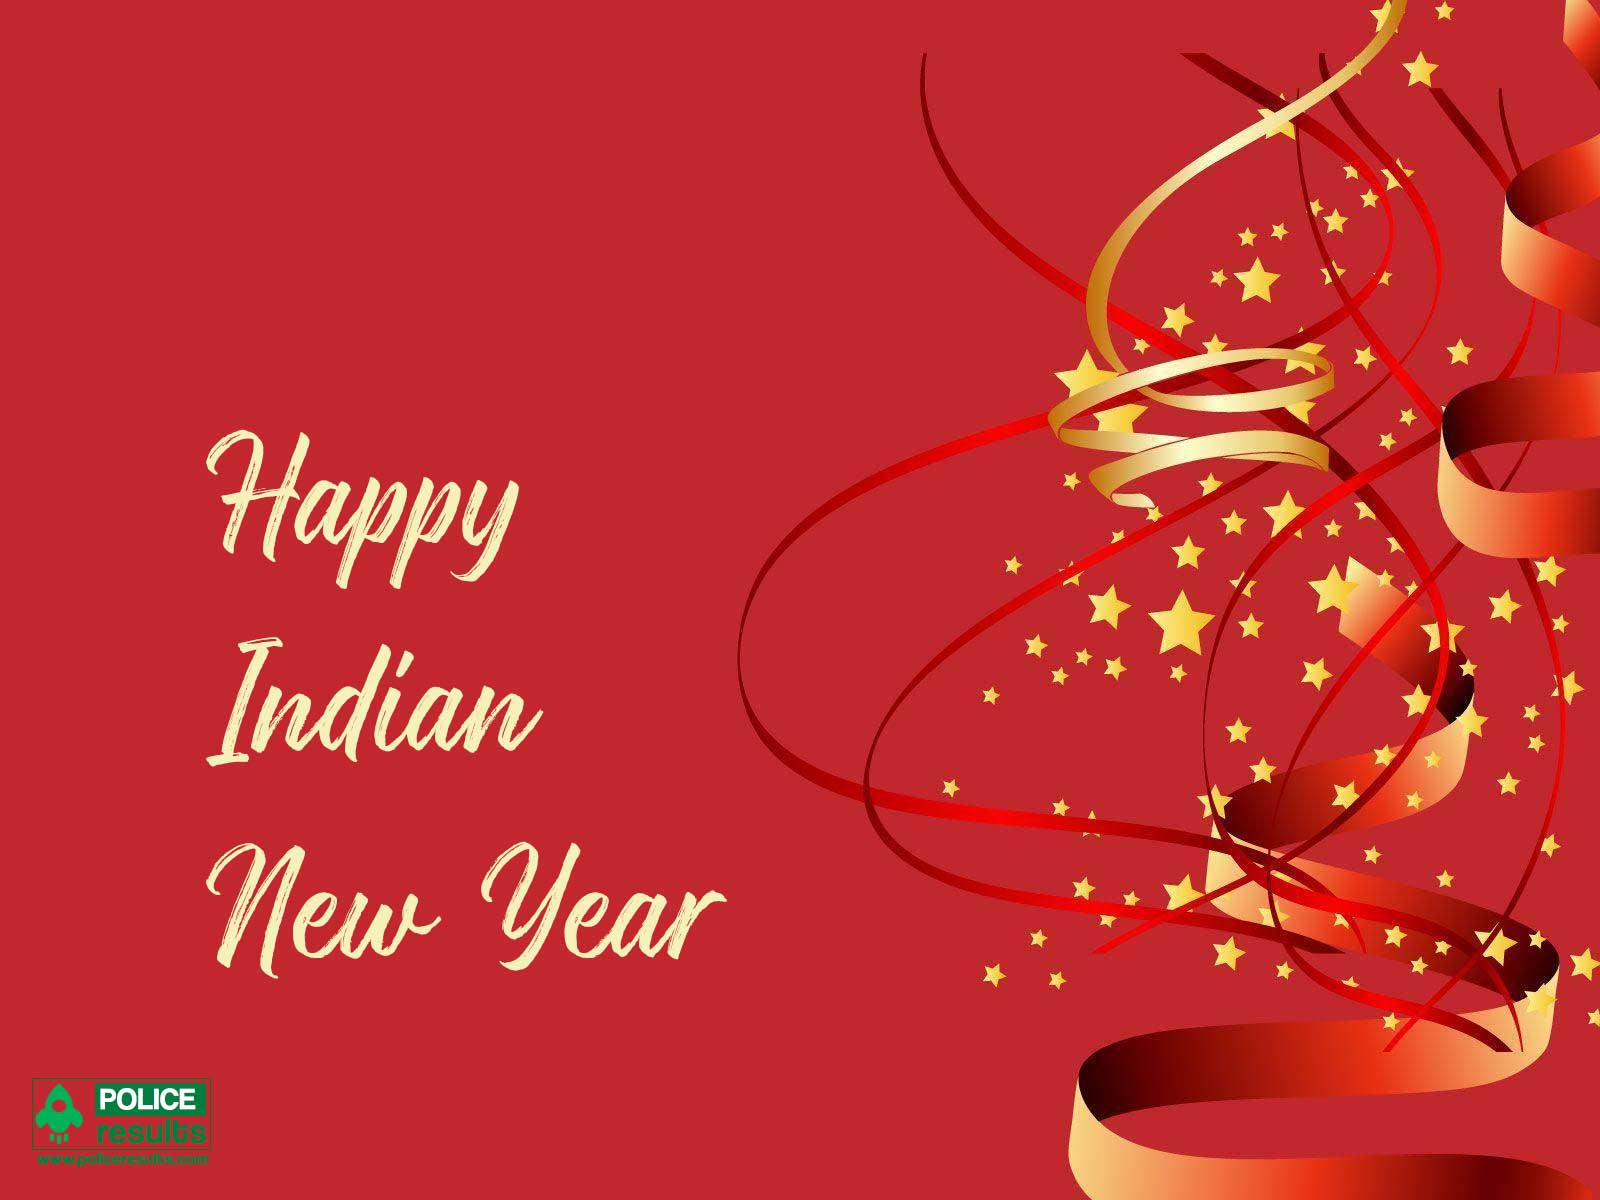 Indian New Year's days : Happy Hindu New Year 2020 Festivals Celebrations in different parts of India